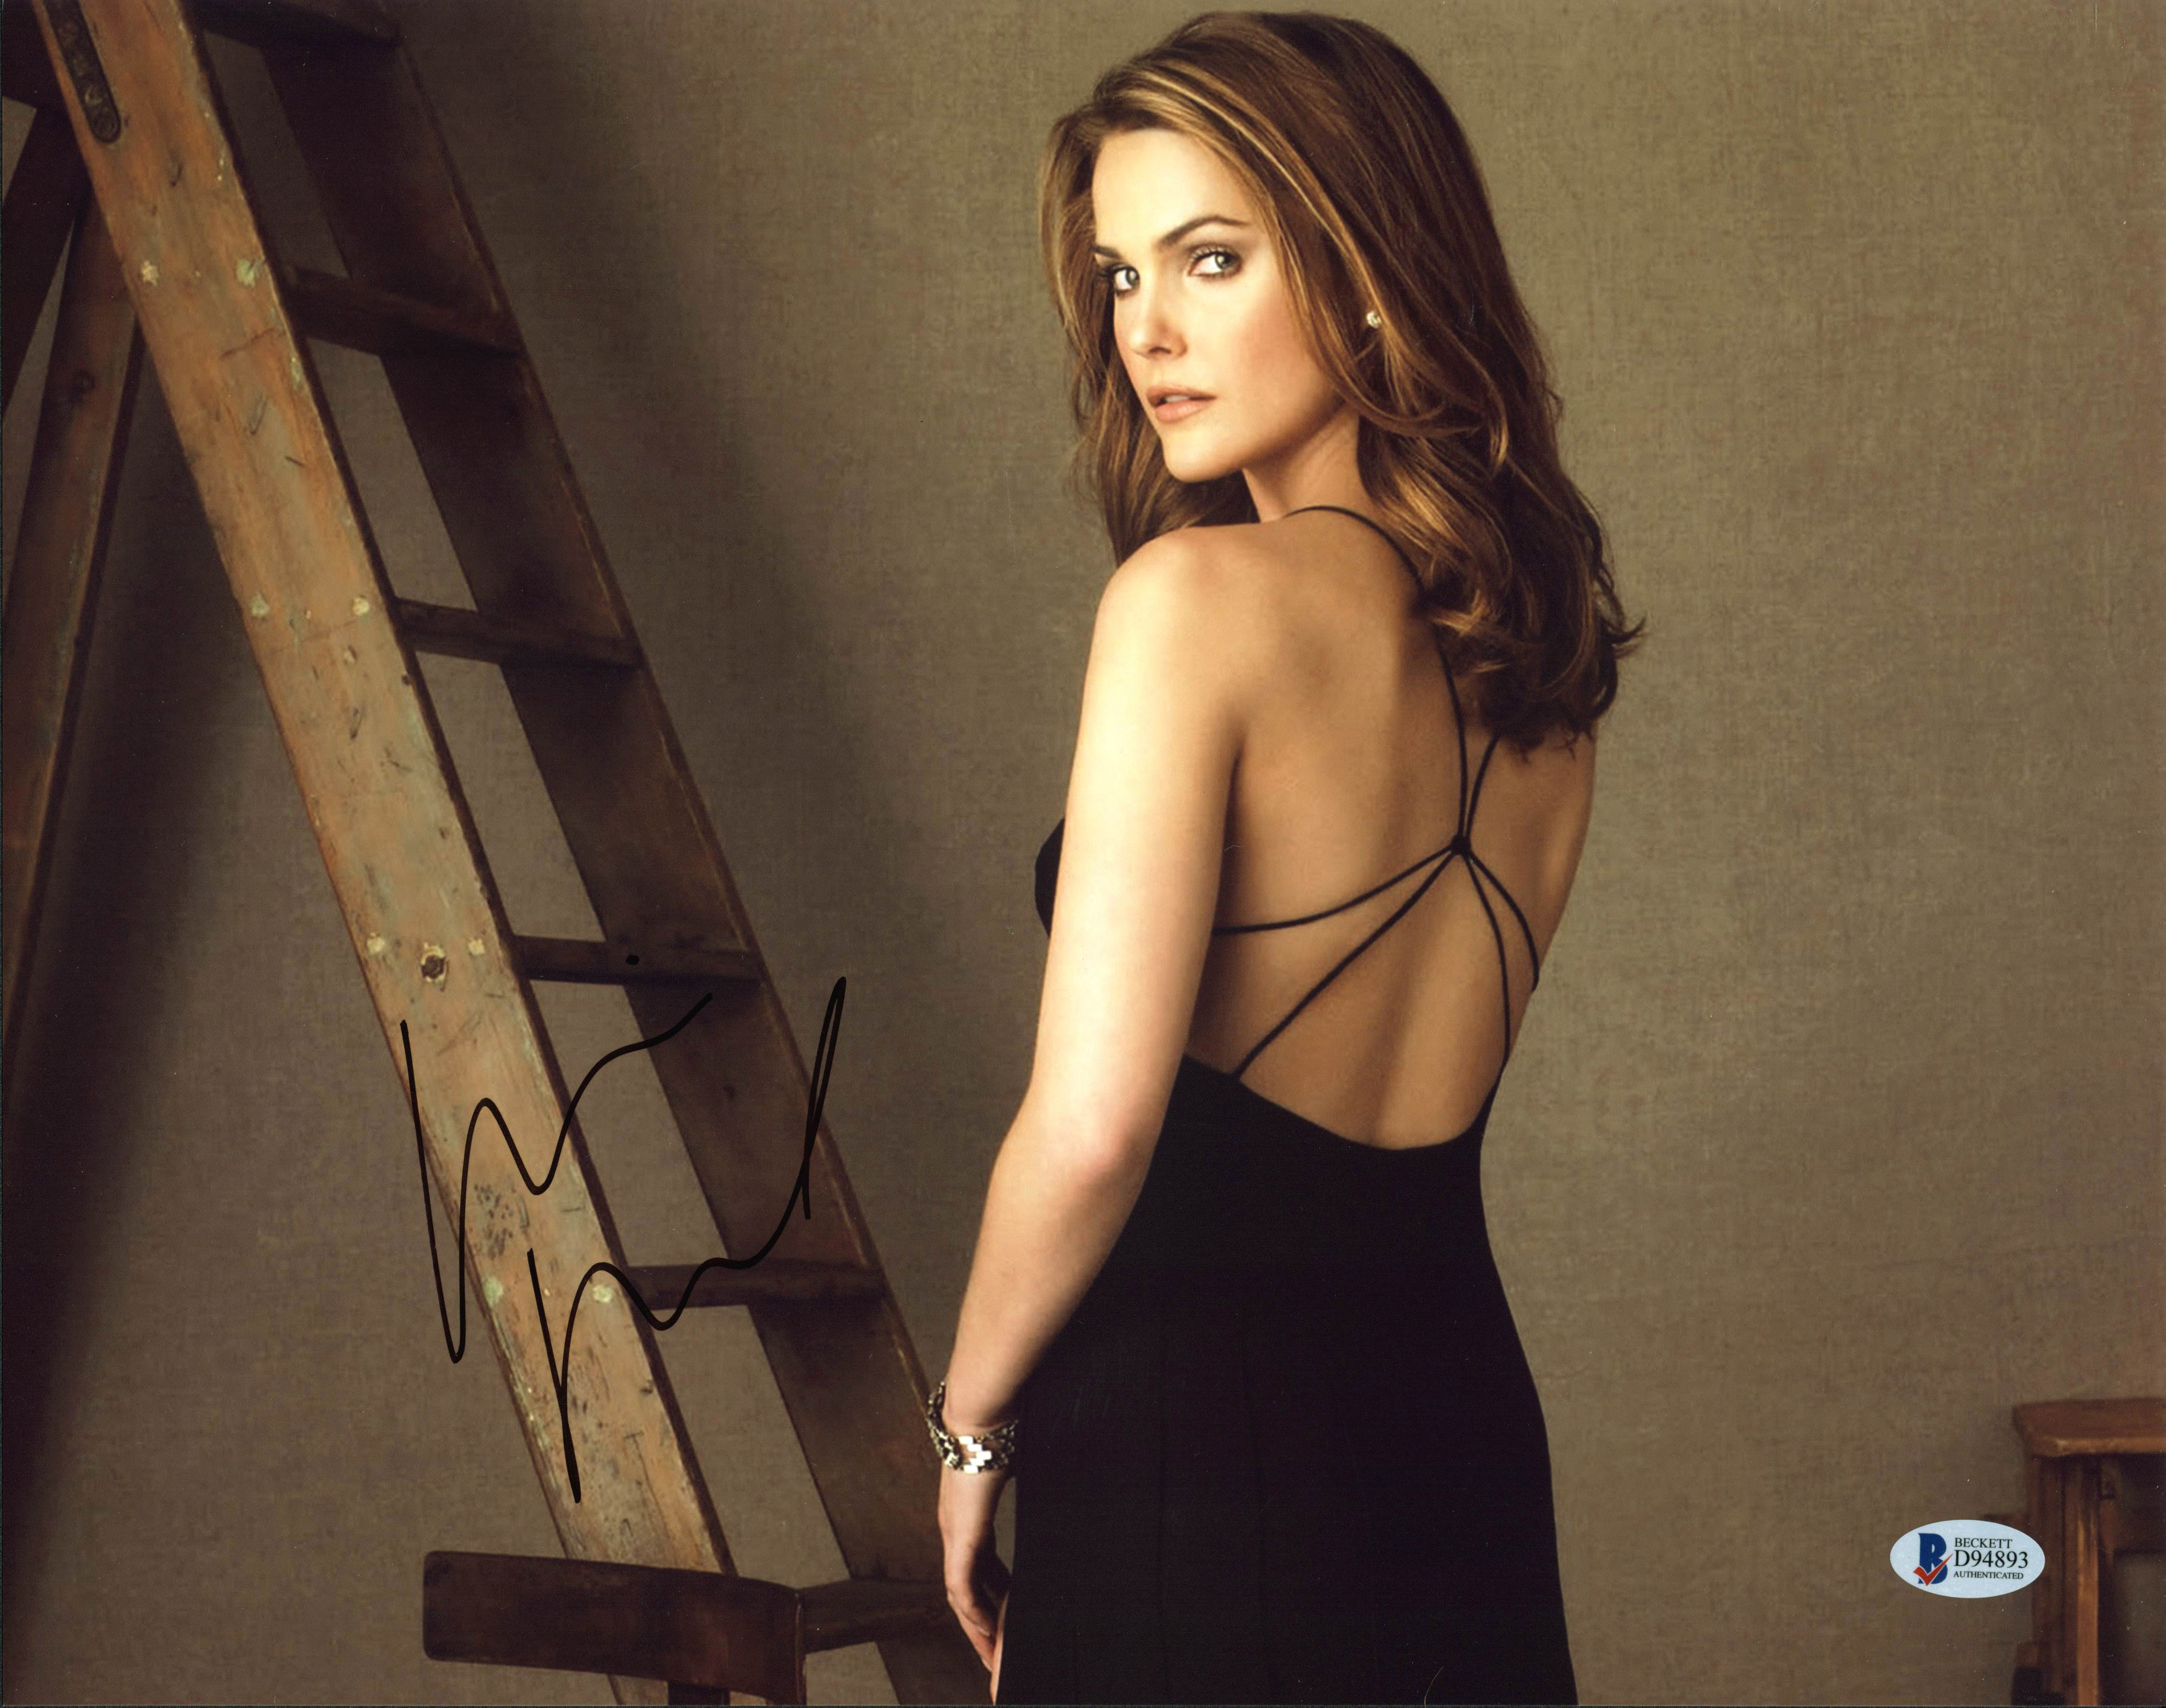 Remarkable, keri russell sex right! Idea